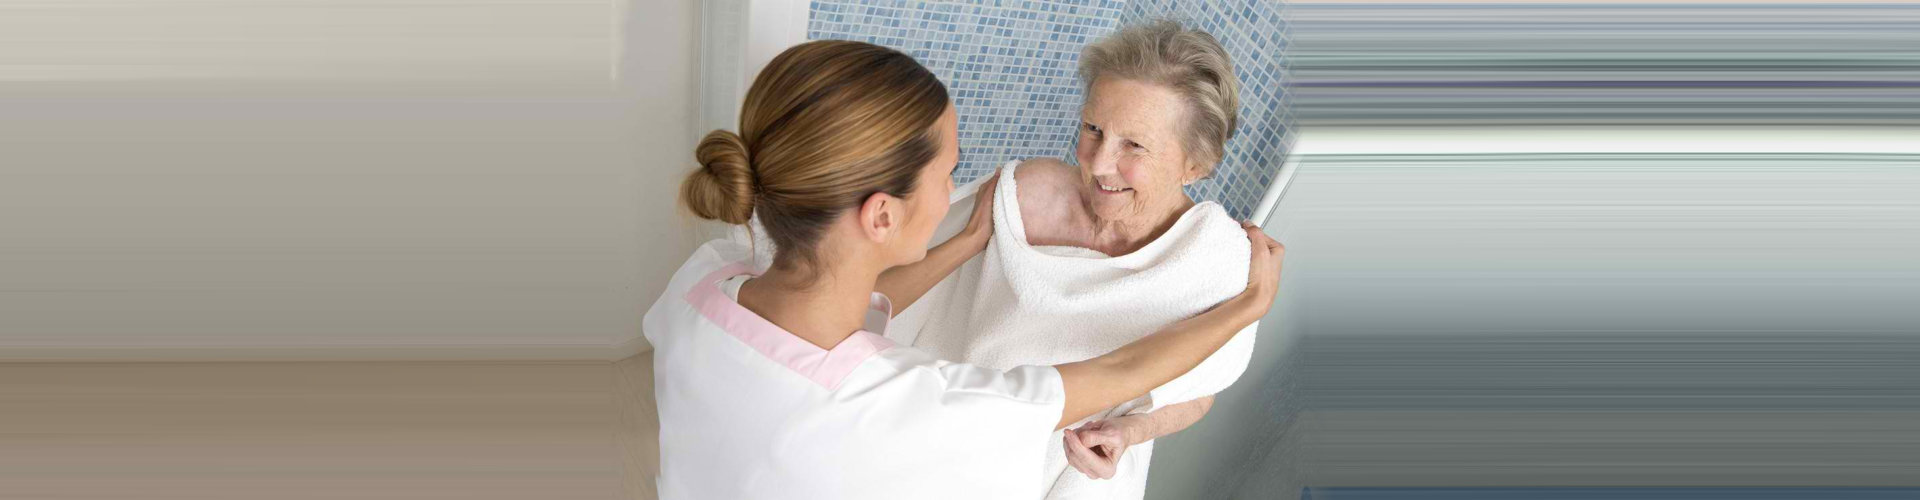 caregiver assisting senior woman in taking a bath